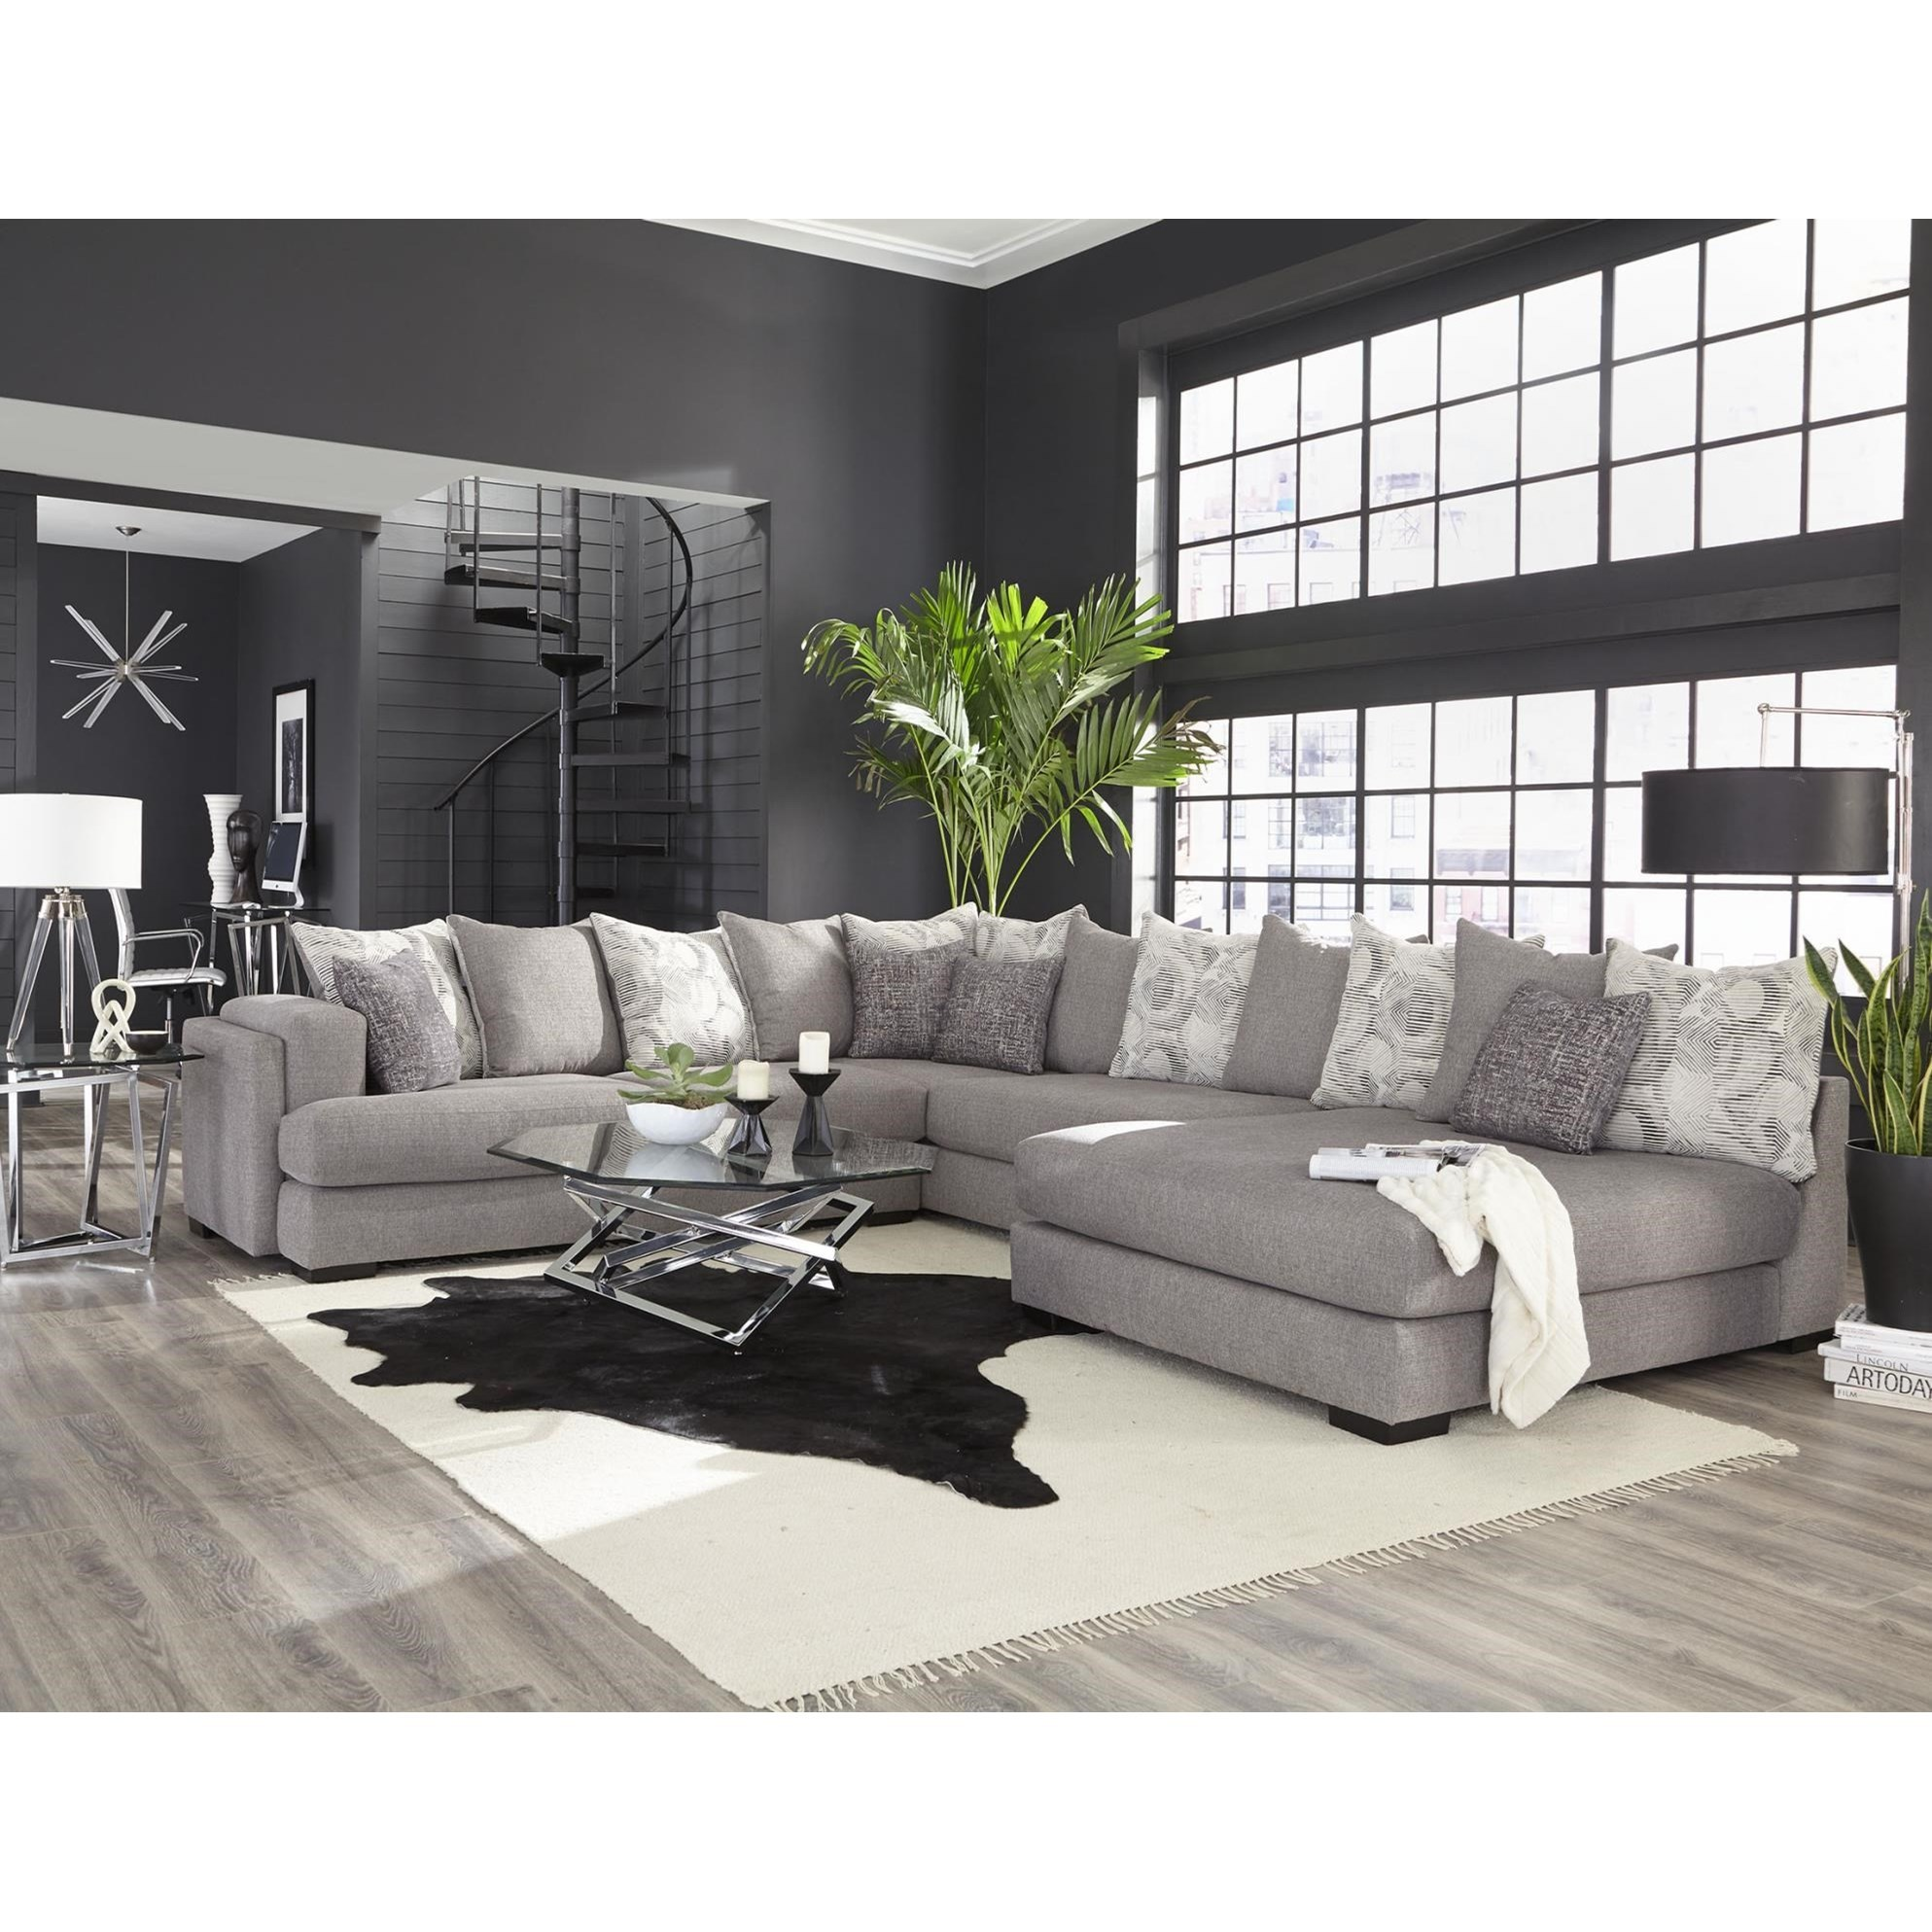 880 Sectional Sofa by Albany at A1 Furniture & Mattress